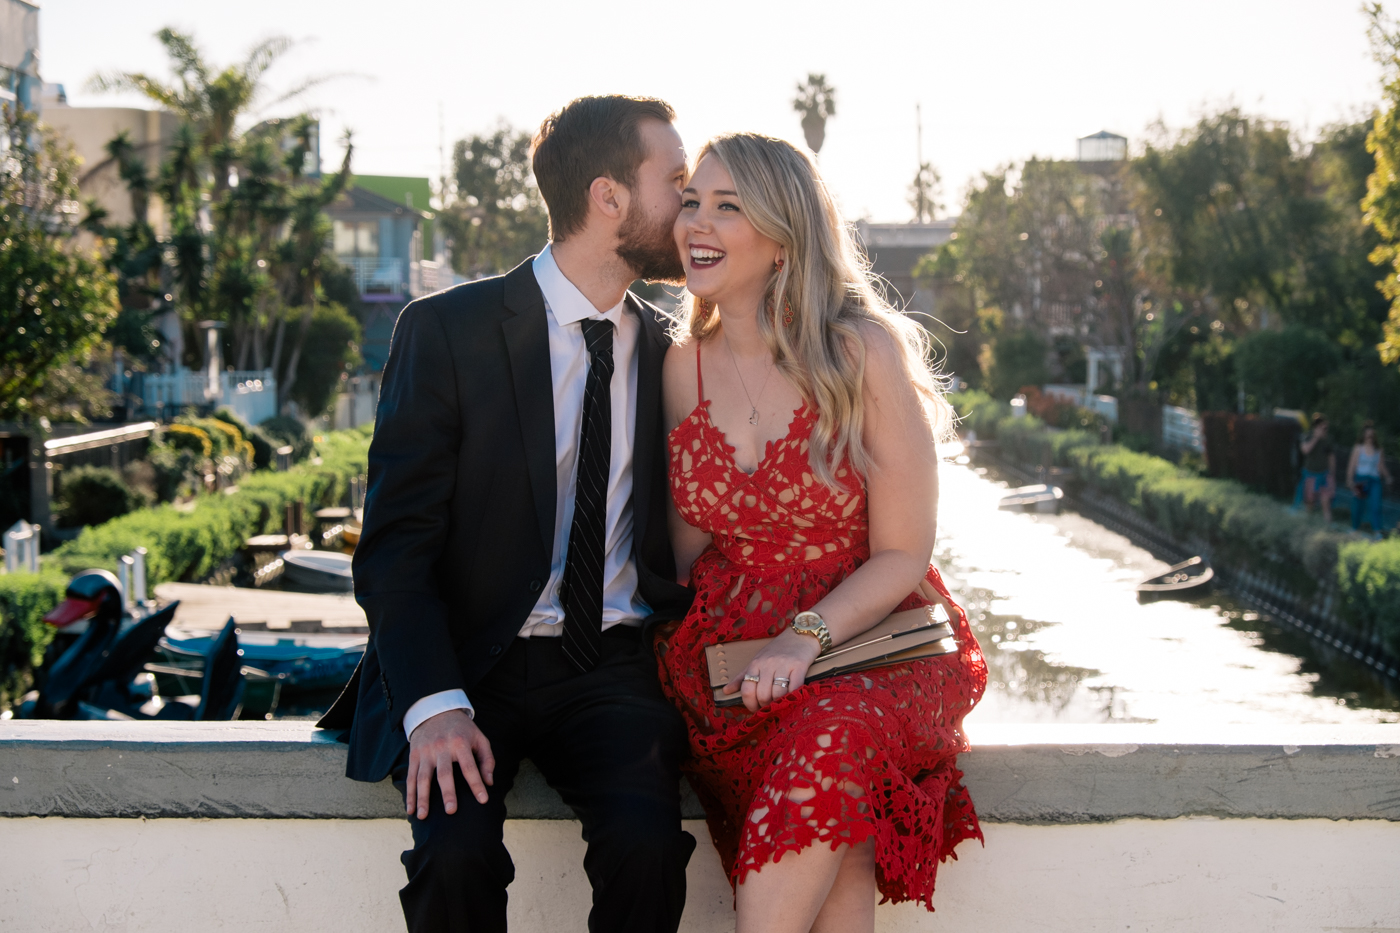 Benjamin and Debora Dahl at the venice Canals in Los Angeles